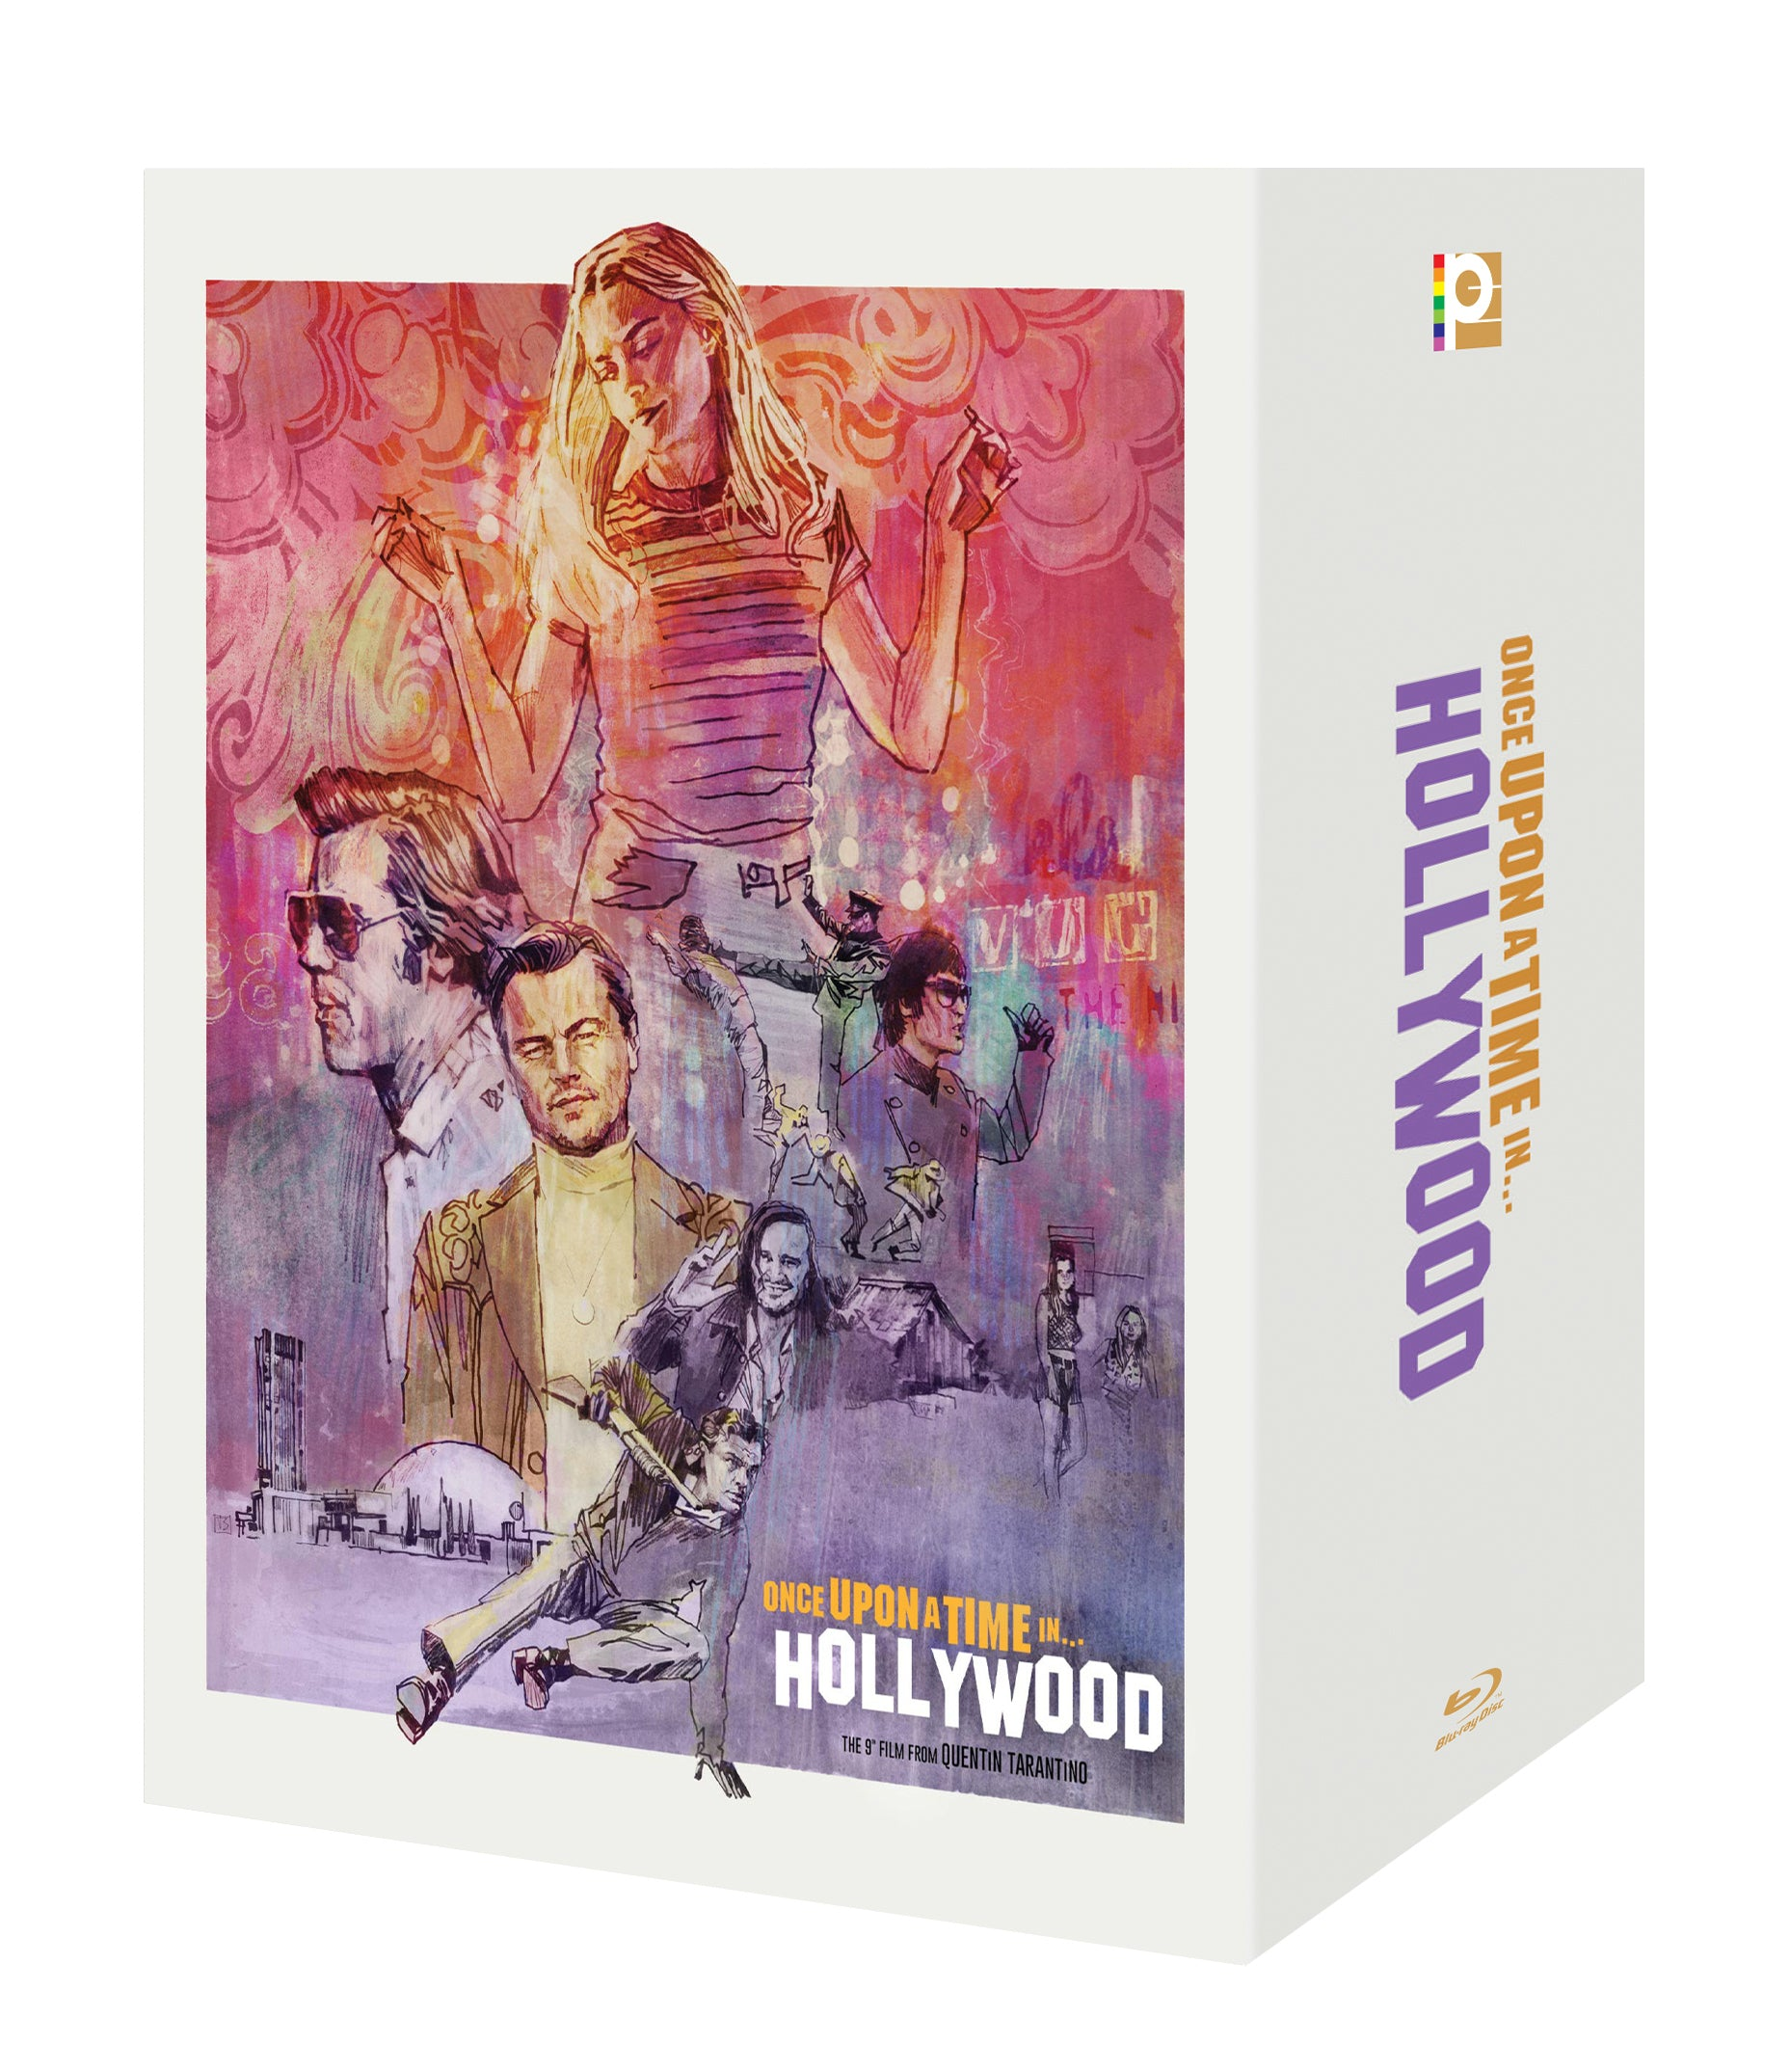 [ME#27] Once Upon A Time In Hollywood Steelbook (One Click)